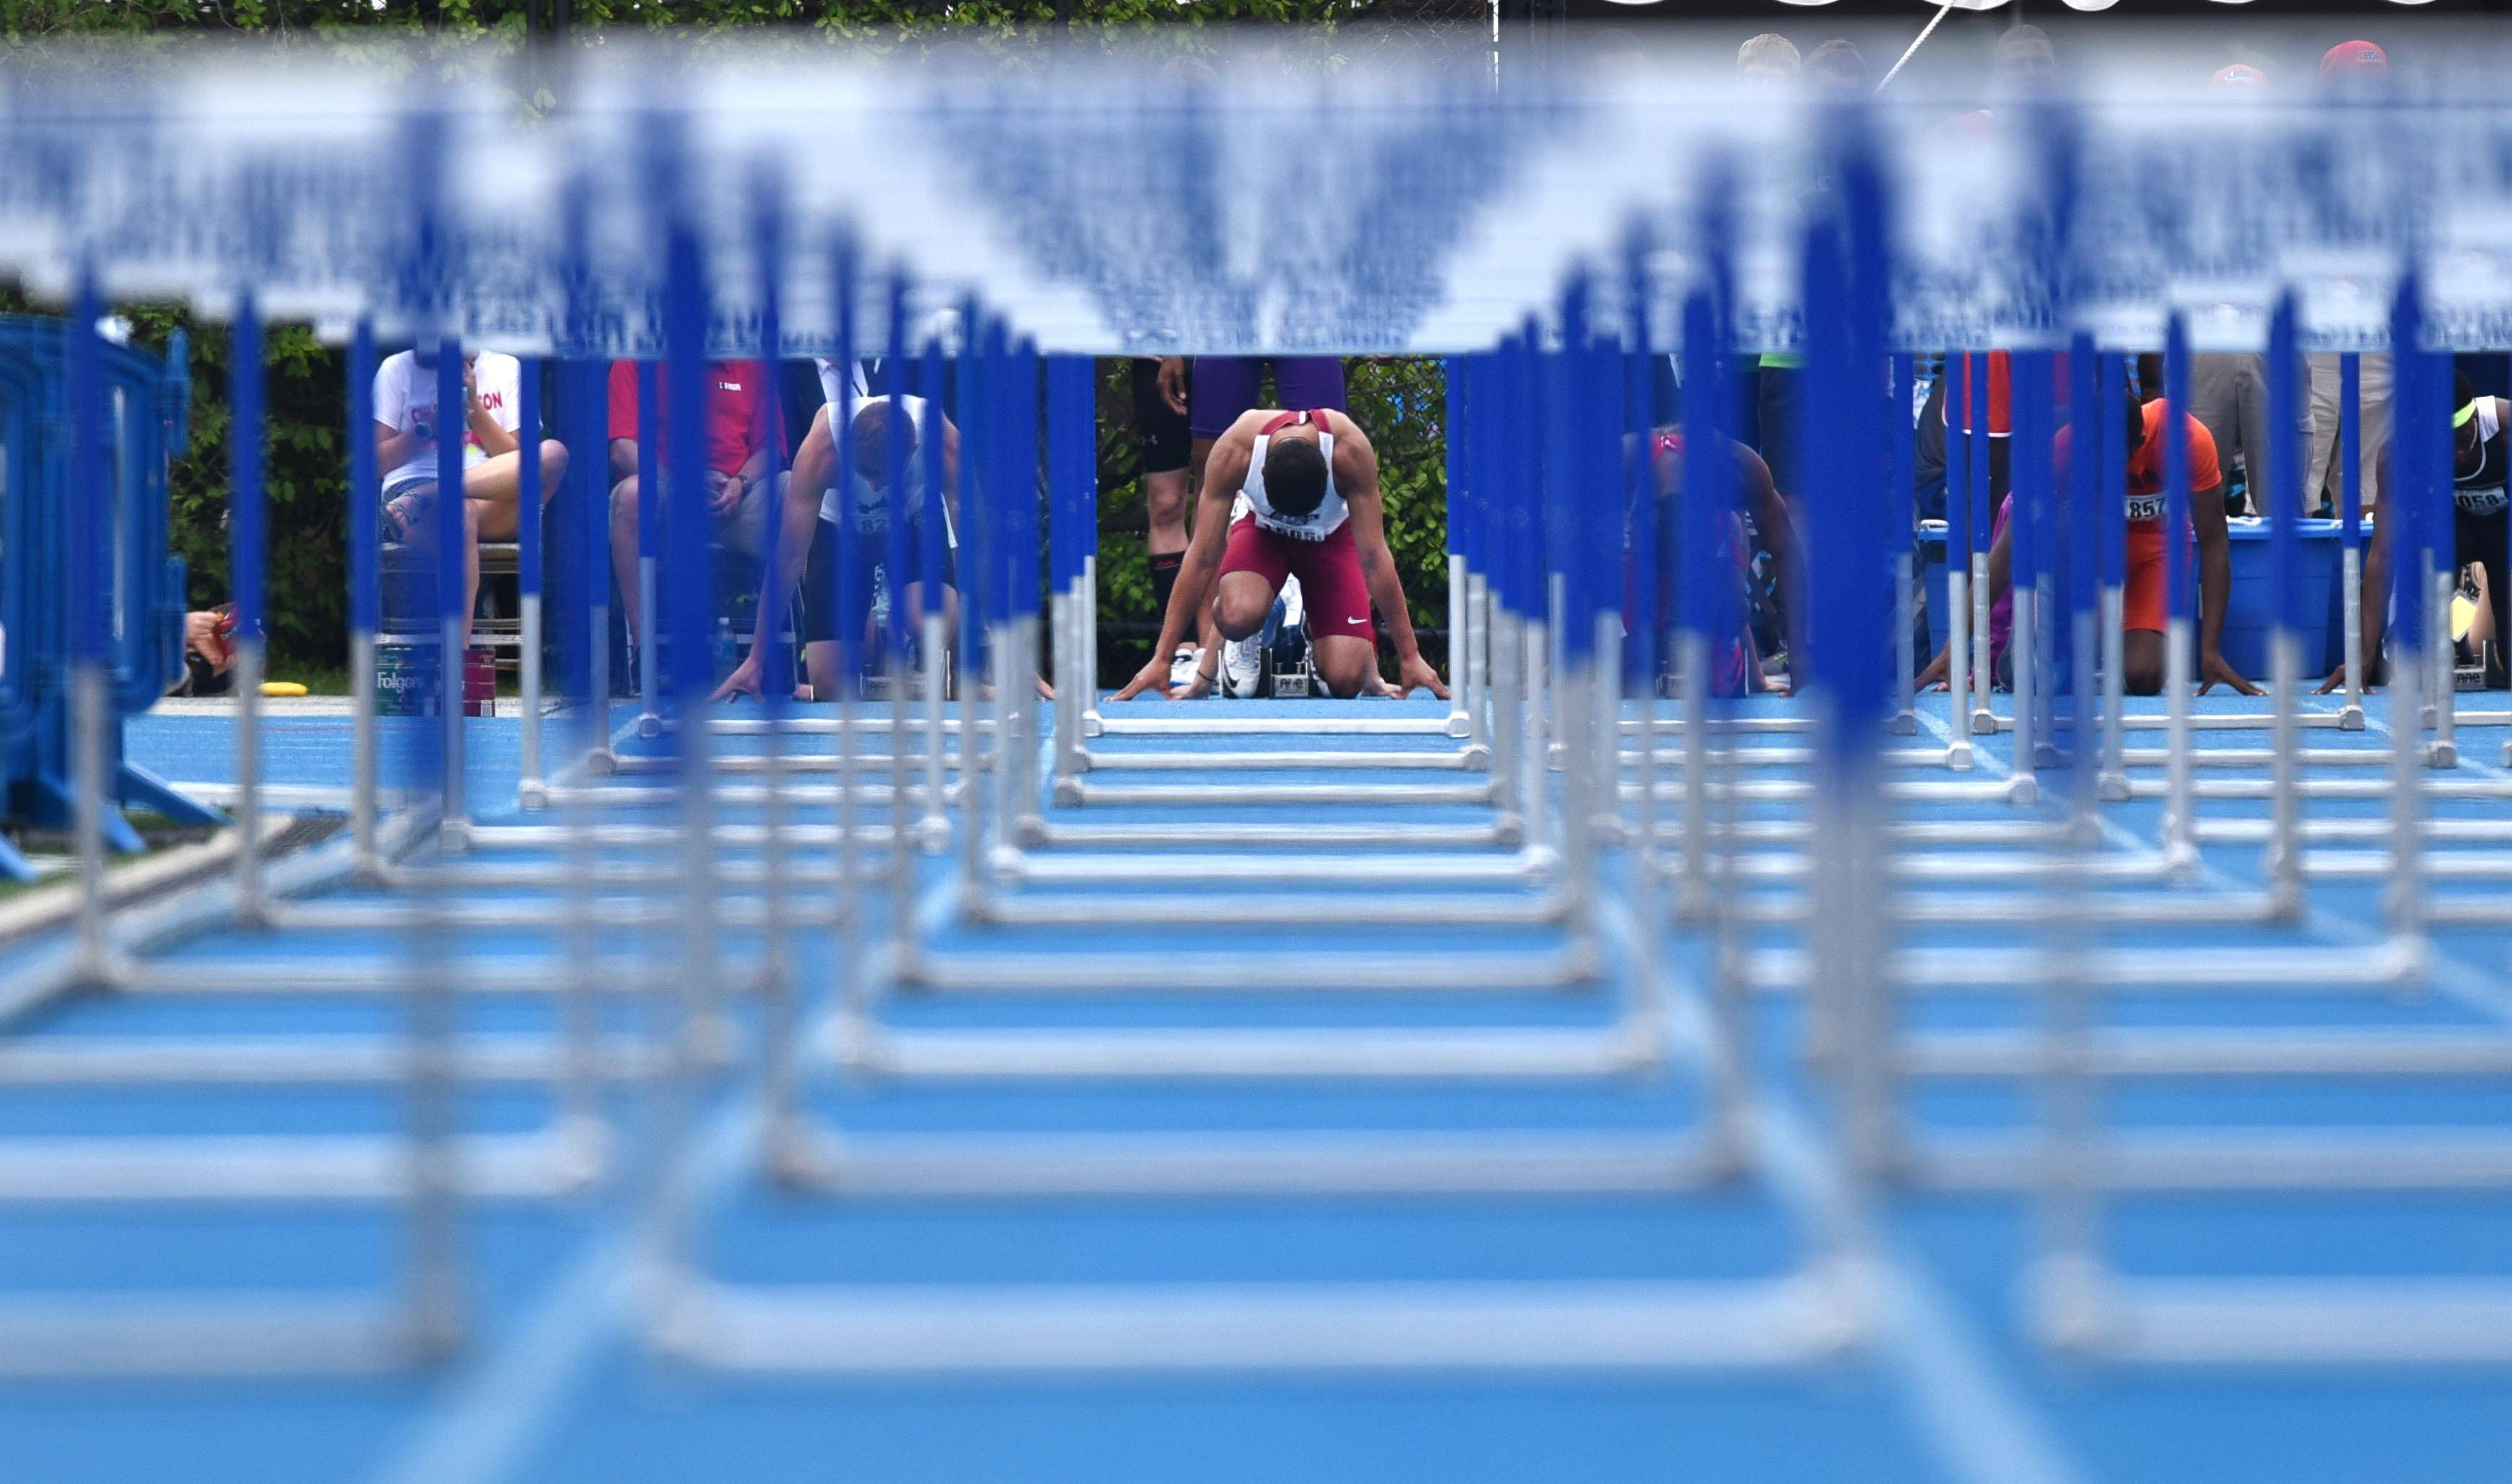 Antioch's Landon Keefover gets set on the starting line for the 110-meter high hurdles in Class 2A Saturday at the boys track state finals in O'Brien Stadium at Eastern Illinois University in Charleston.